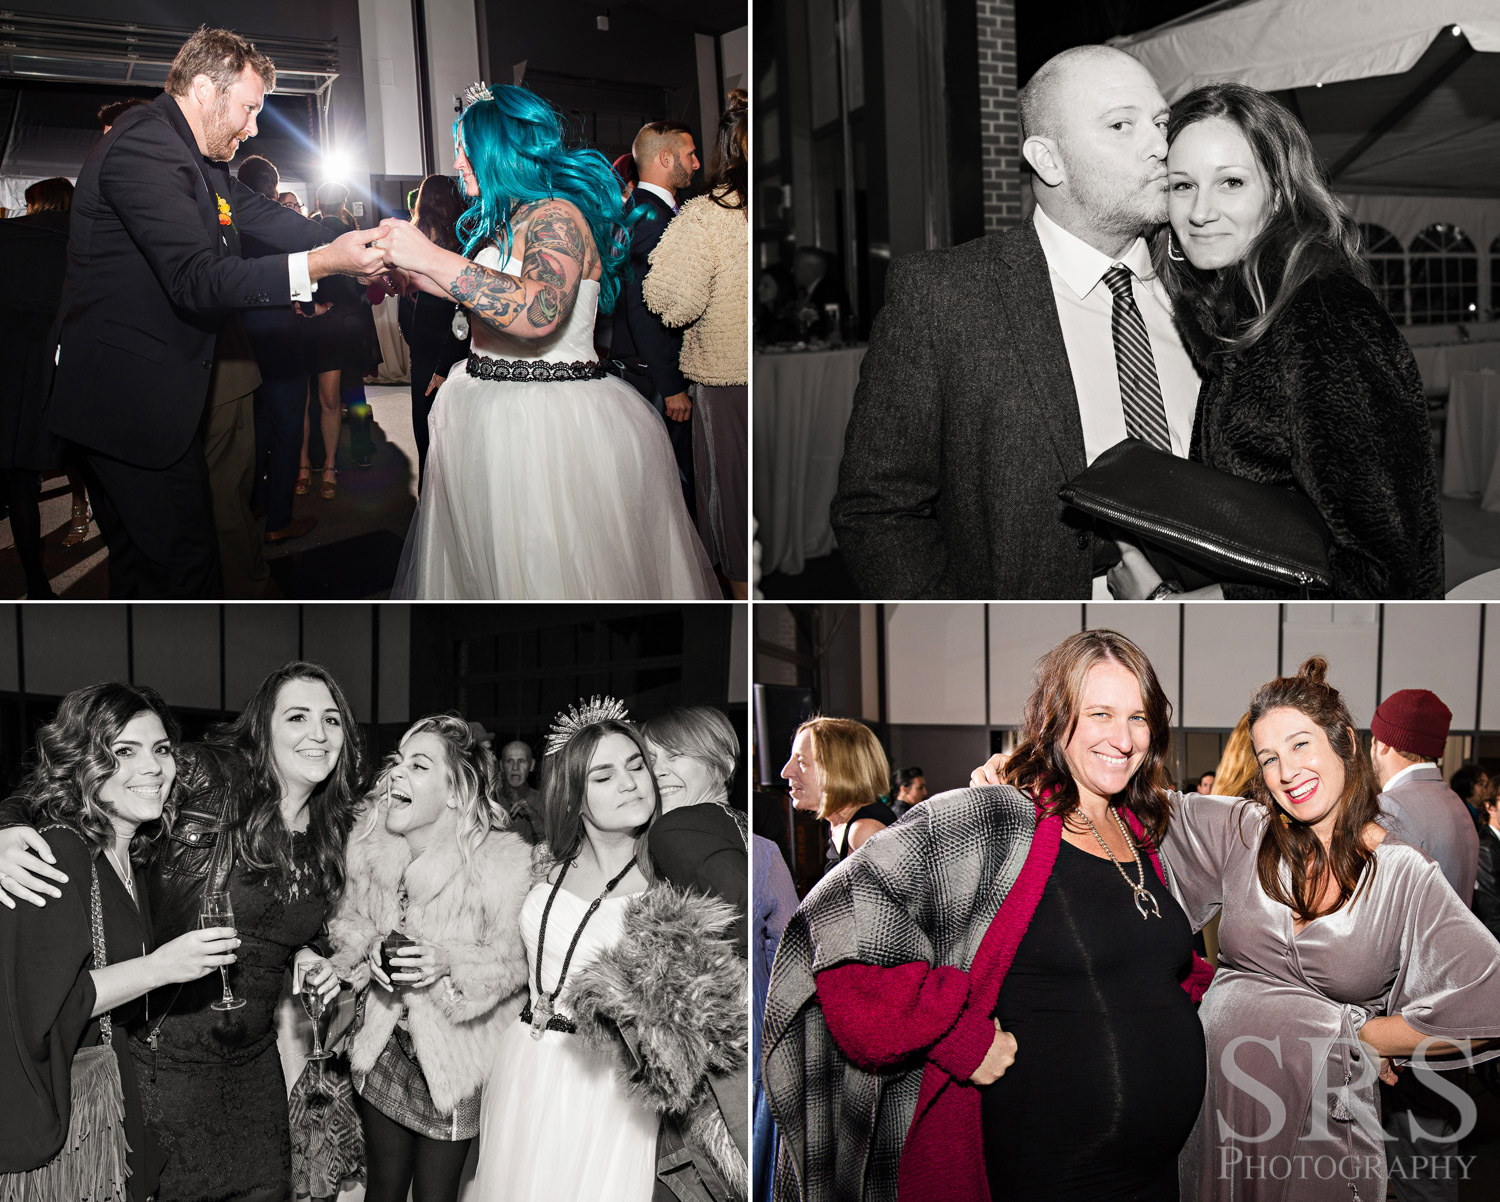 16_srs_photography_sara_stadtmiller_asbury_park_wedding_photography_nj_wedding_photographer_monmouth_county_wedding_photographer_the_asbury_hotel